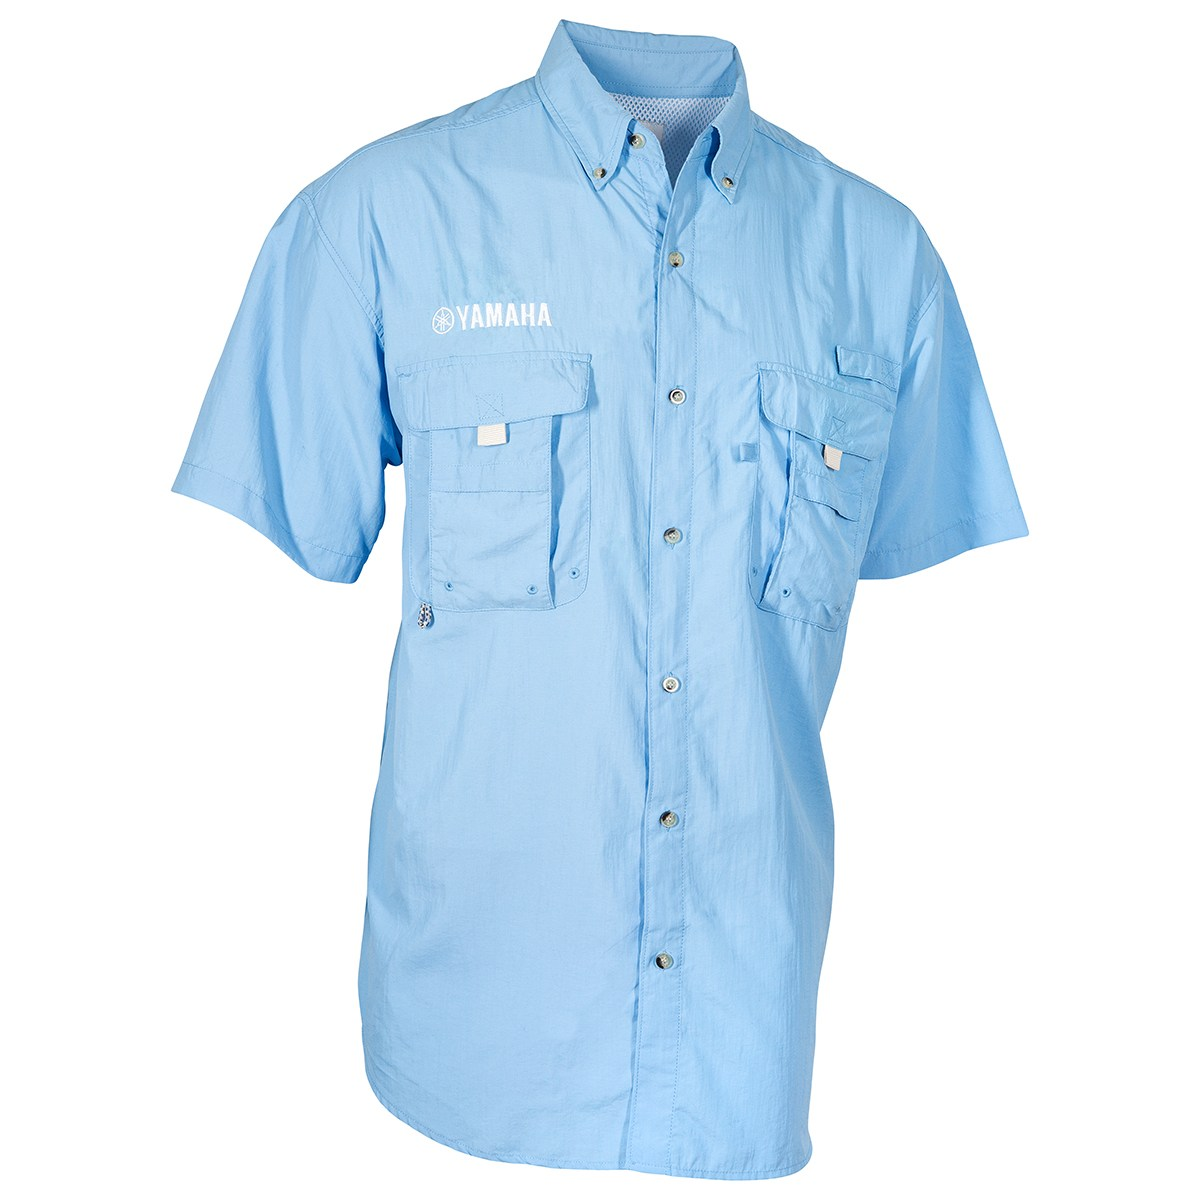 Product details for Get company shirts made